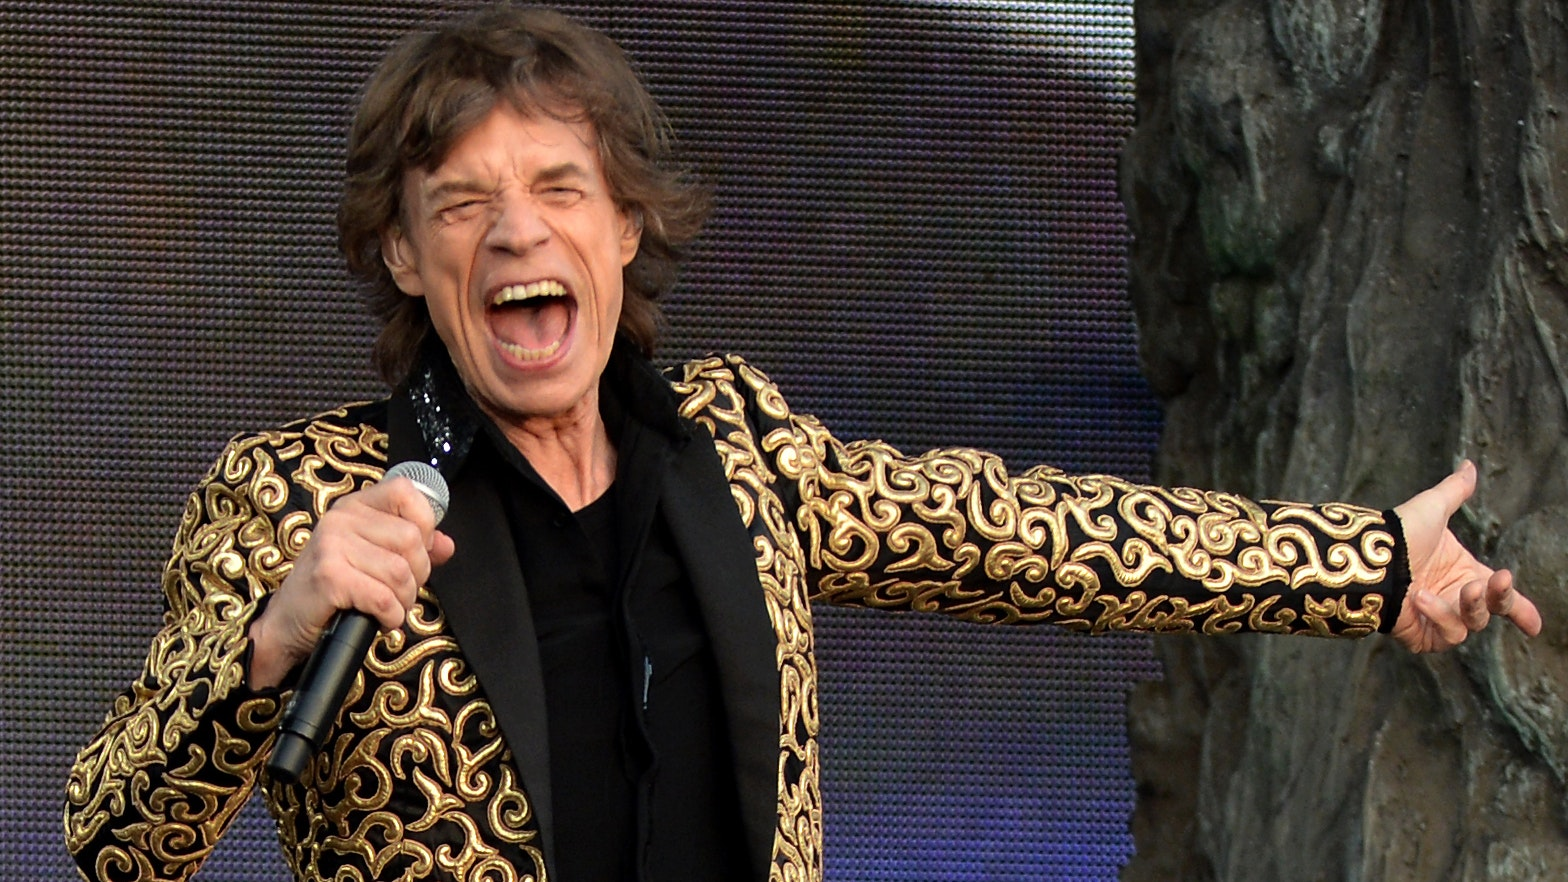 Mick Jagger 'doing very well' after medical treatment: rep